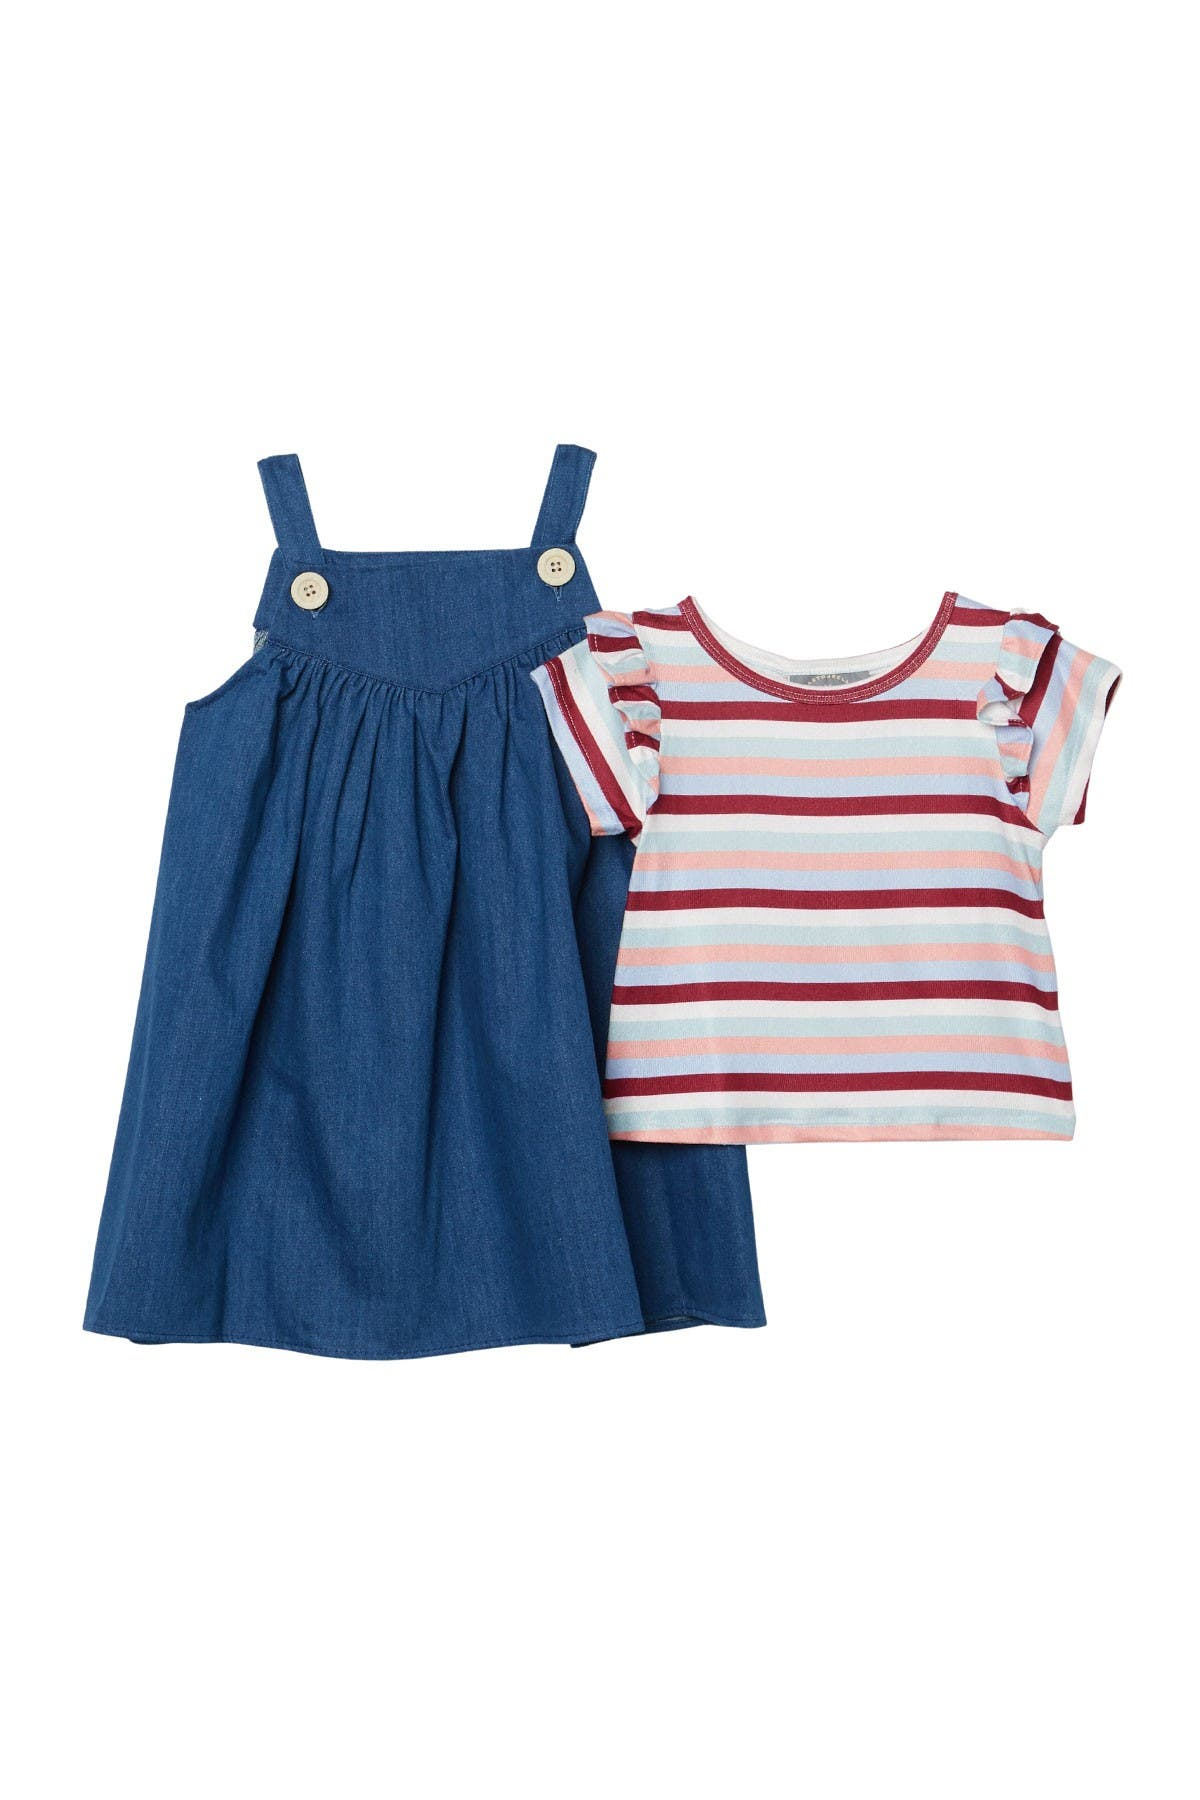 Image of Pastourelle by Pippa and Julie Denim Jumper & Striped Tee